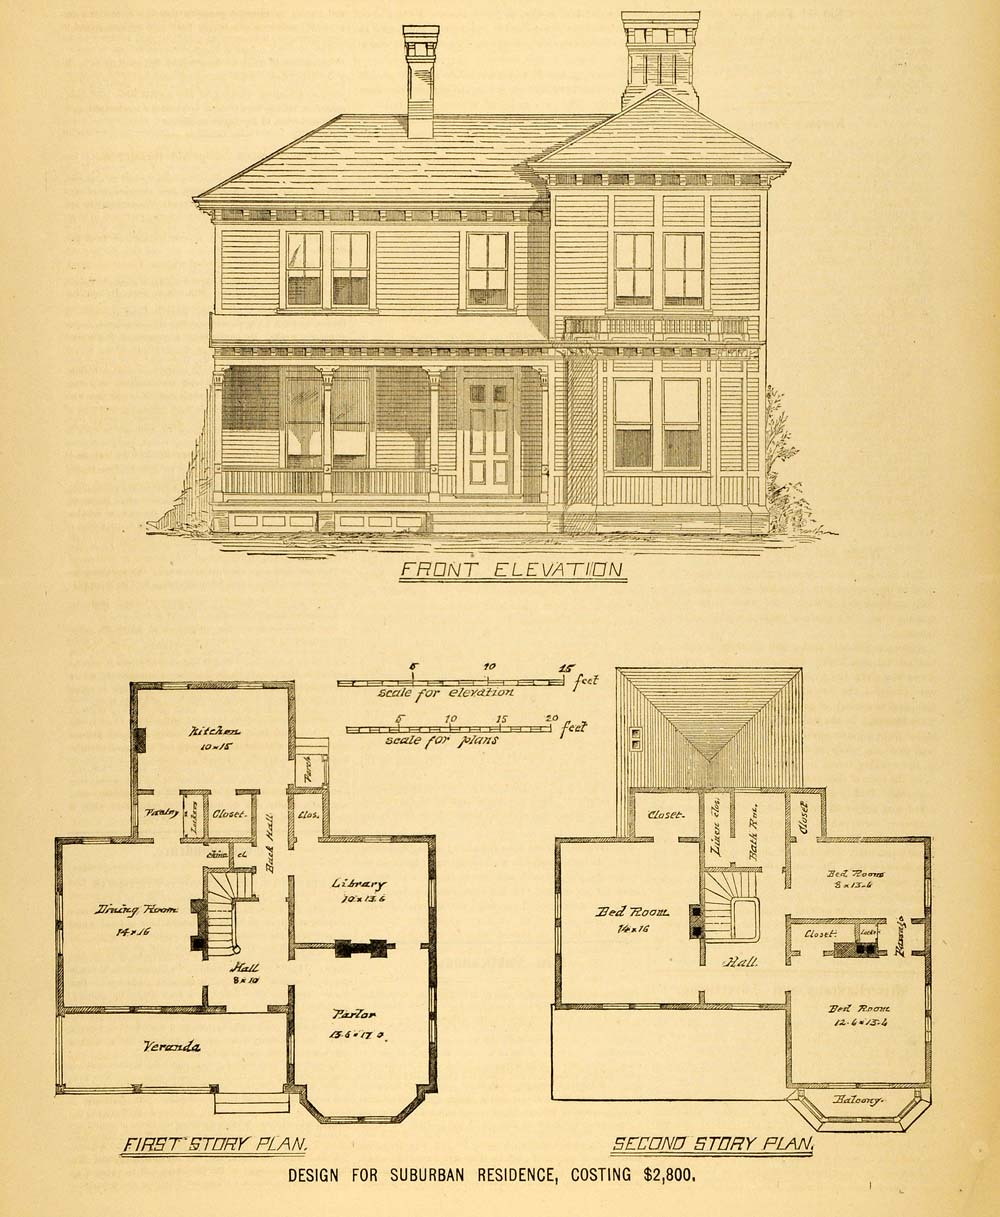 1878 print house architectural design floor plans for Architectural design plans